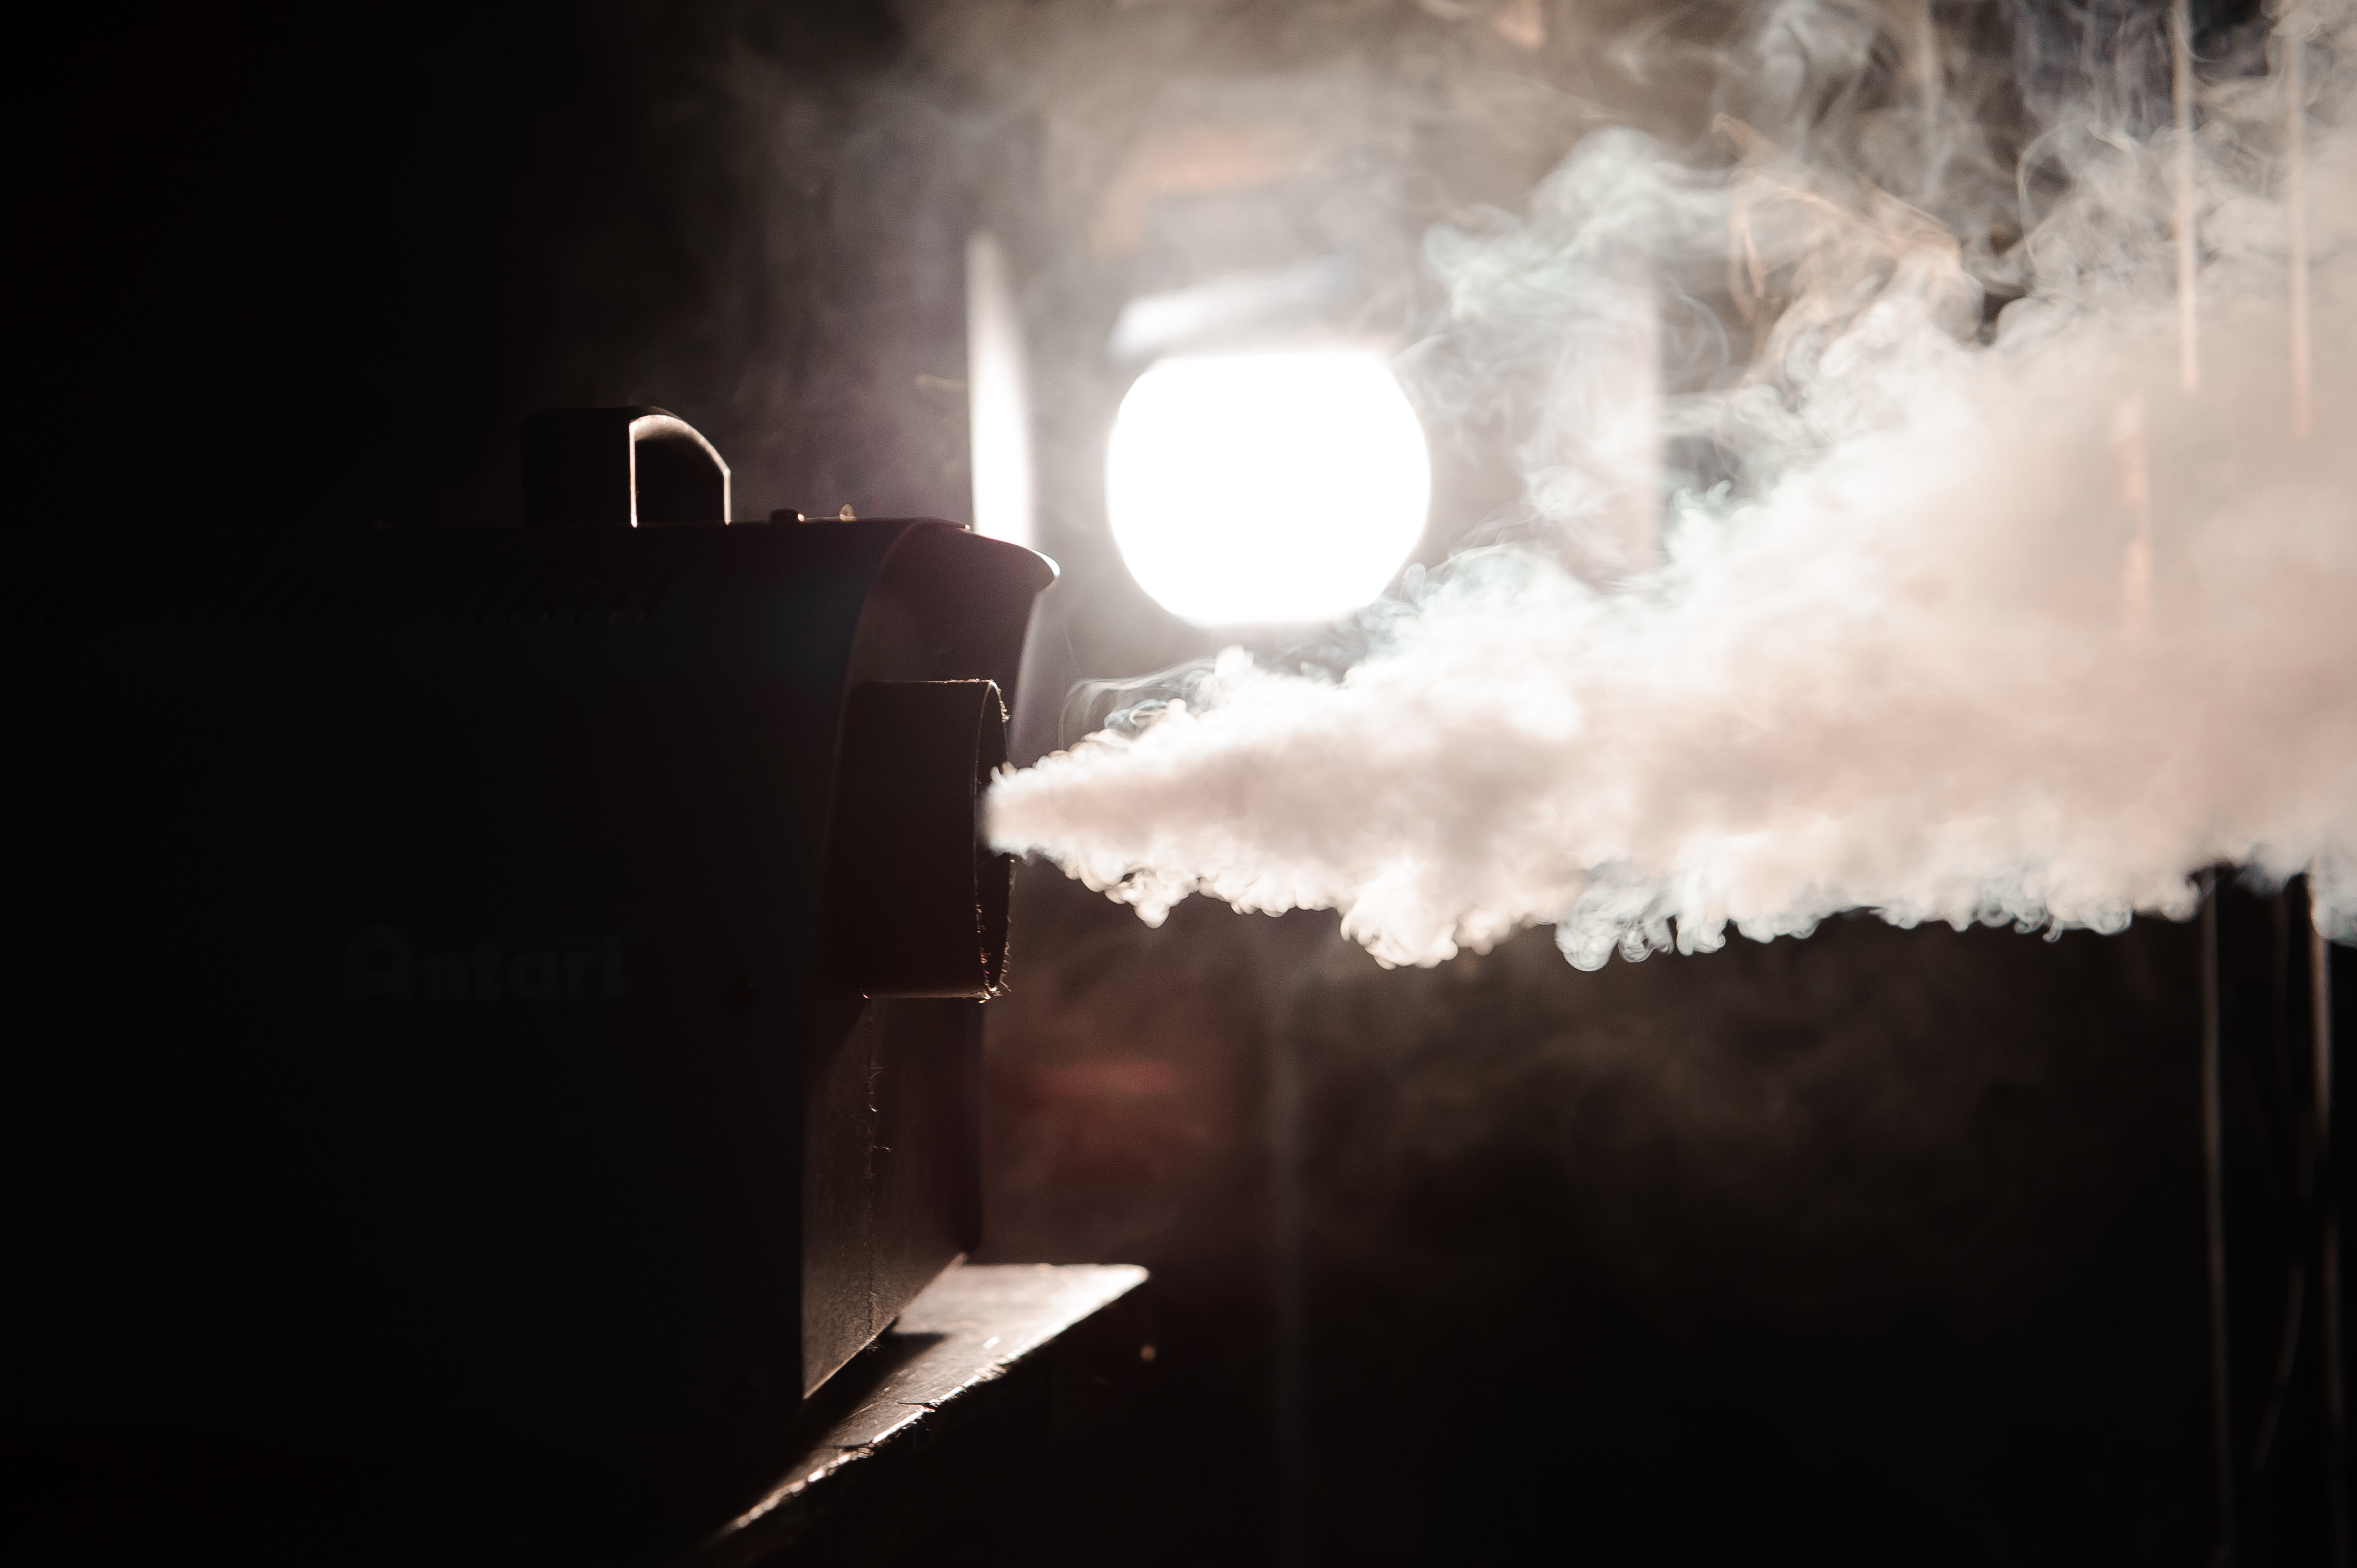 From Weddings to Sporting Events, These Fog Machines Take Your Party to Thrilling and Chilling Heights